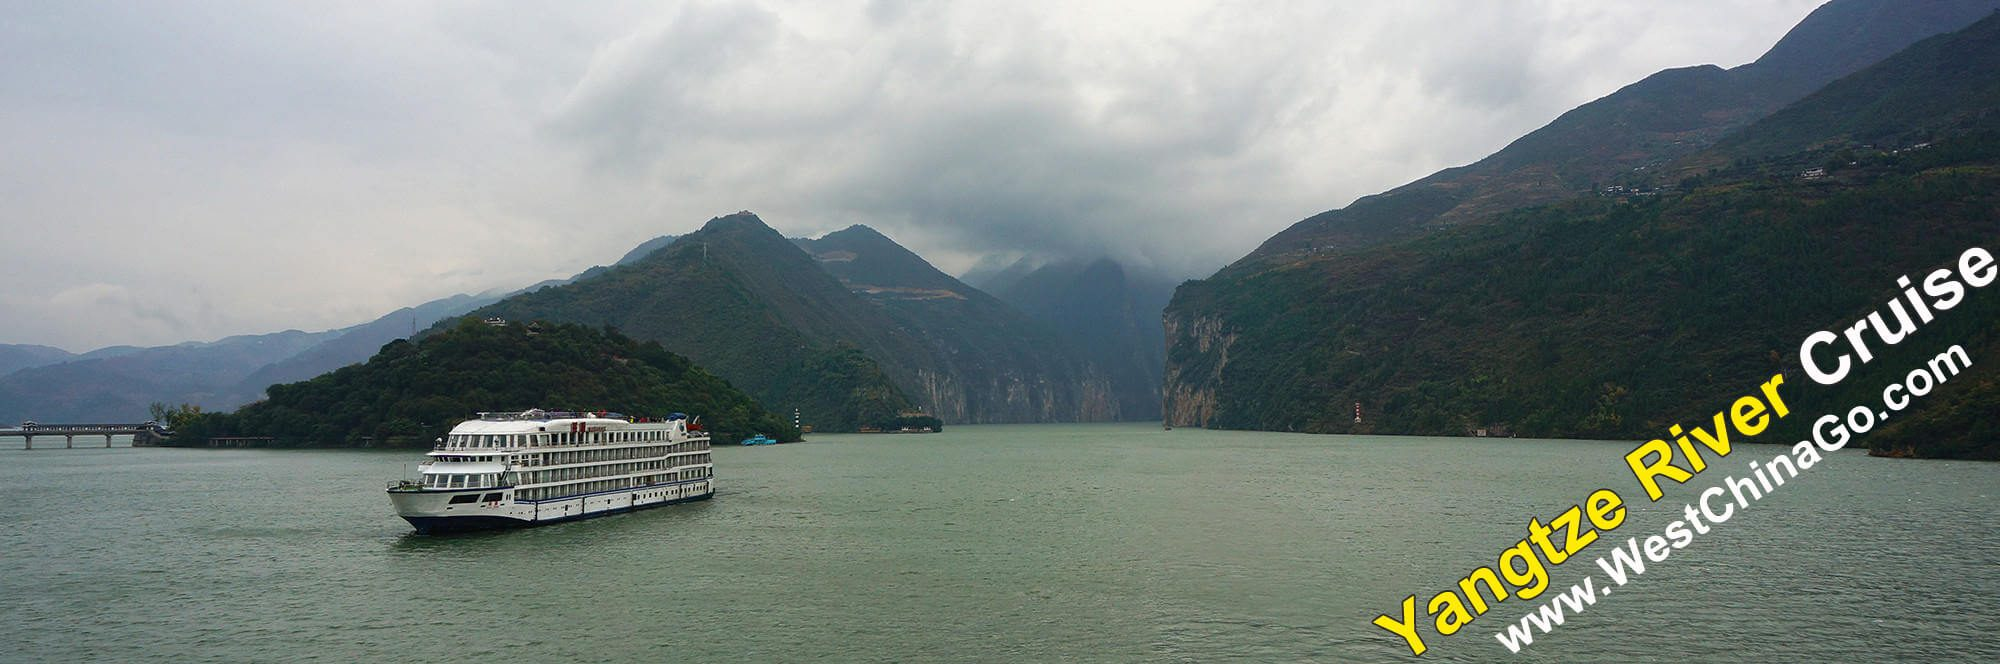 2018 yangtze river cruise